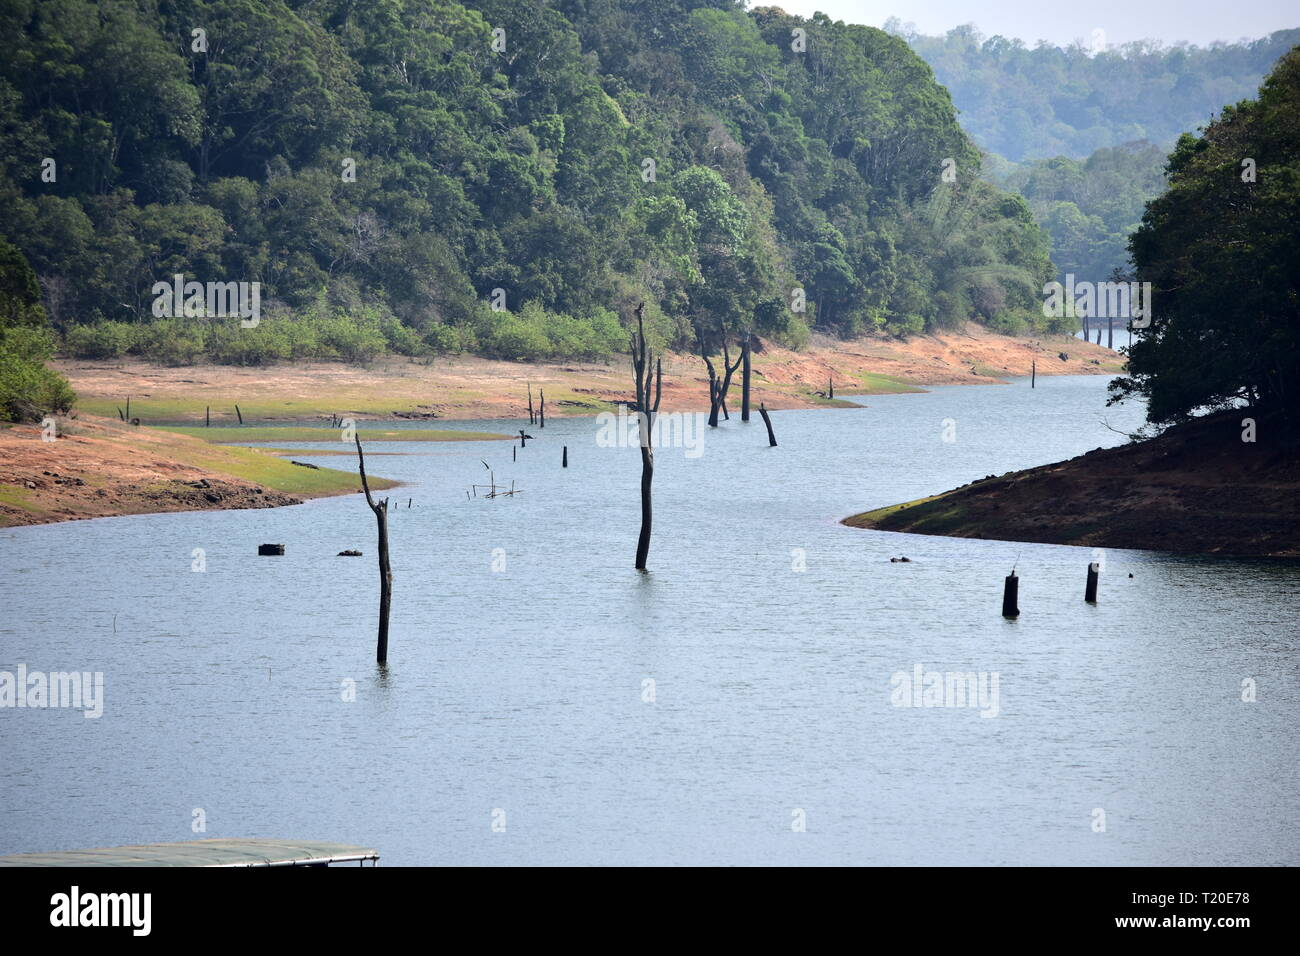 Thekkady Lake Boating view at Periyar National Park - Stock Image